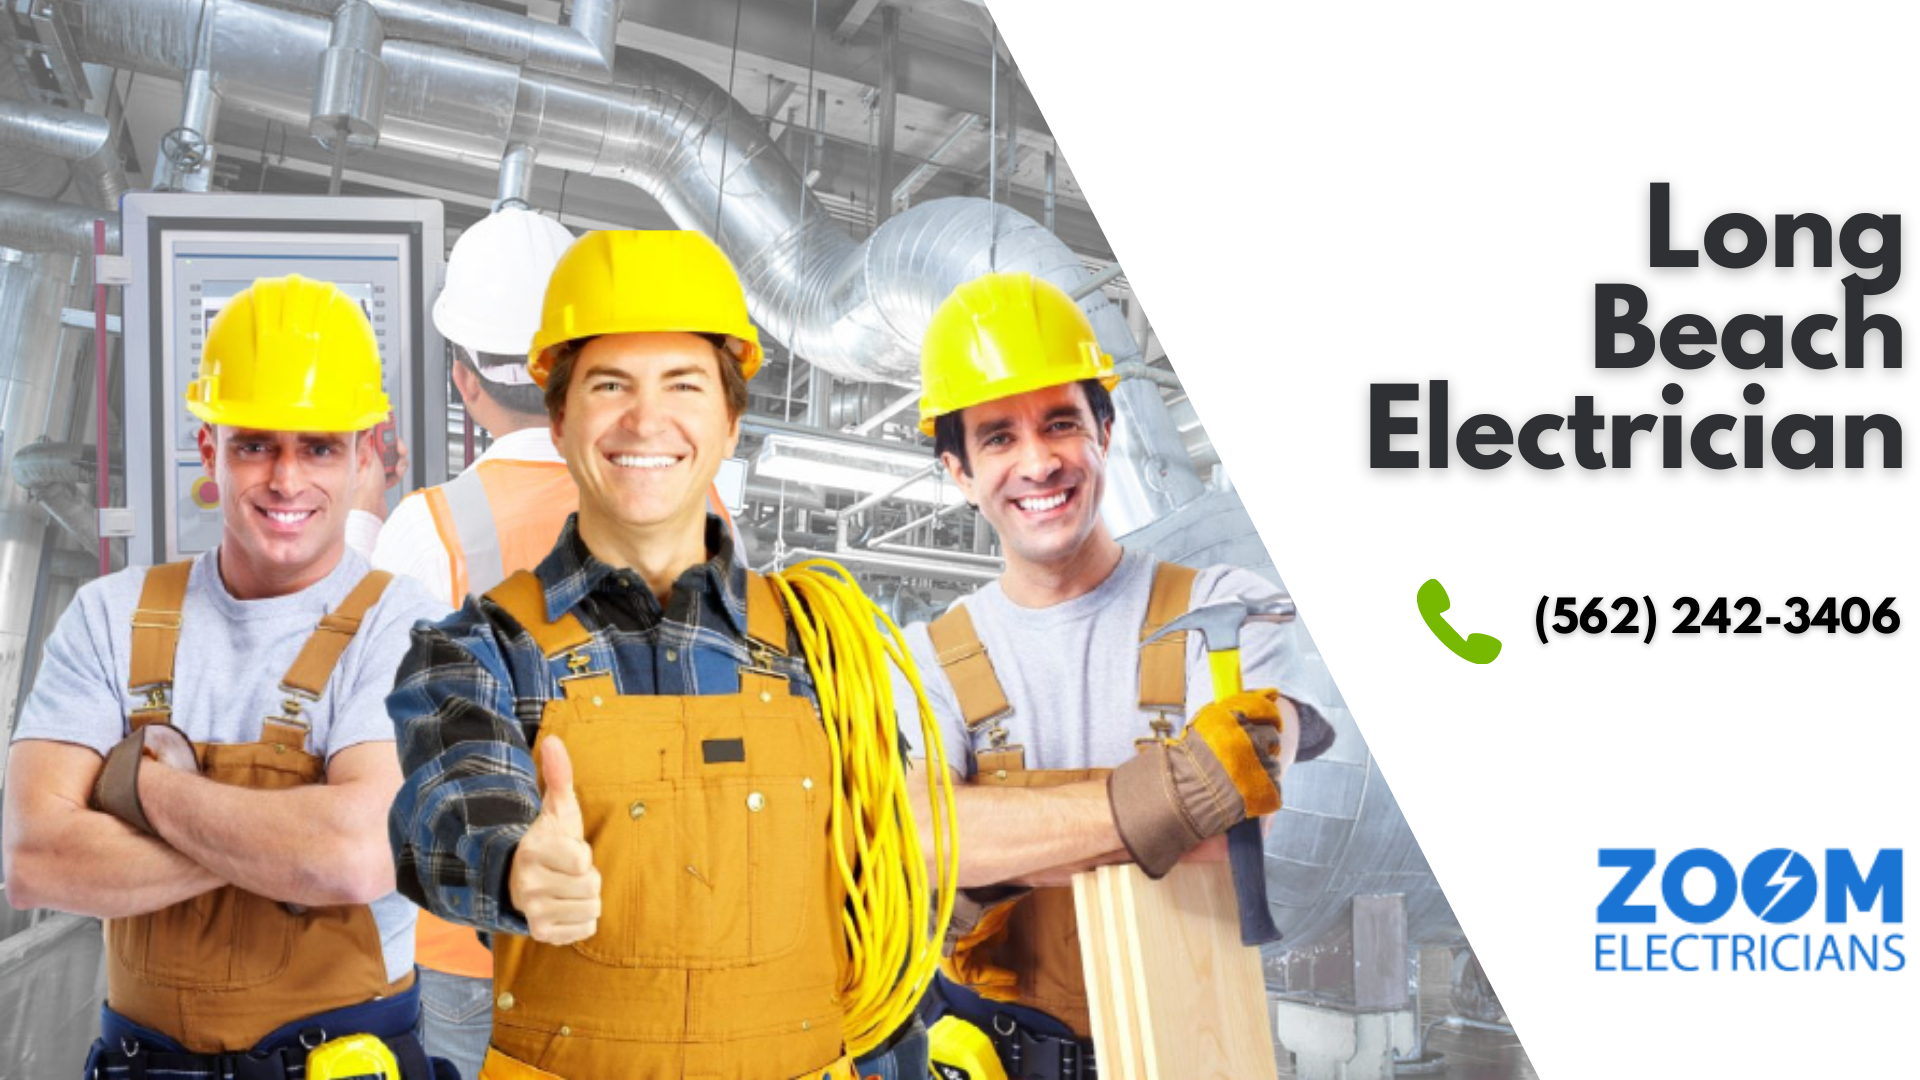 More Affordable Long Beach Electrician